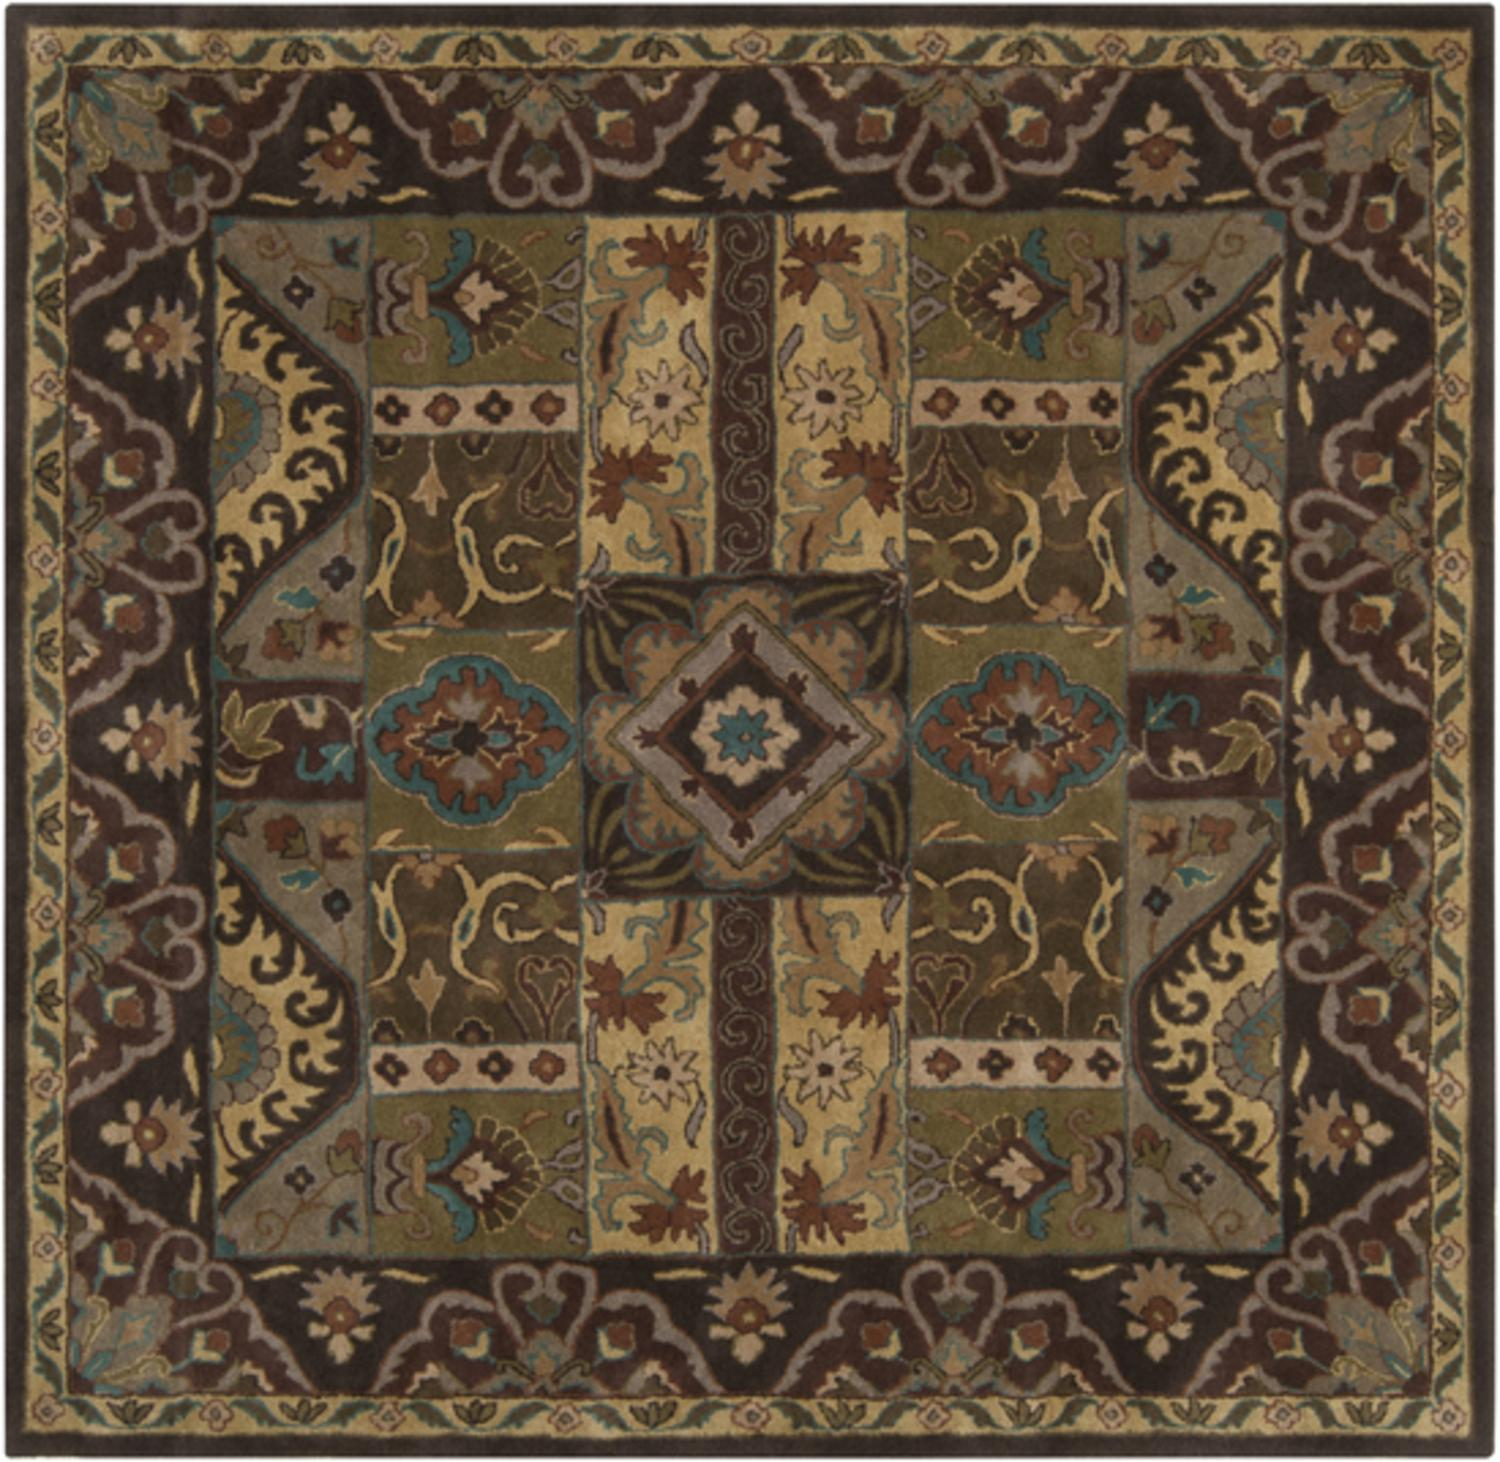 9.75' x 9.75' Vitellius Teal Green & Dark Brown Hand Tufted Wool Area Throw Rug